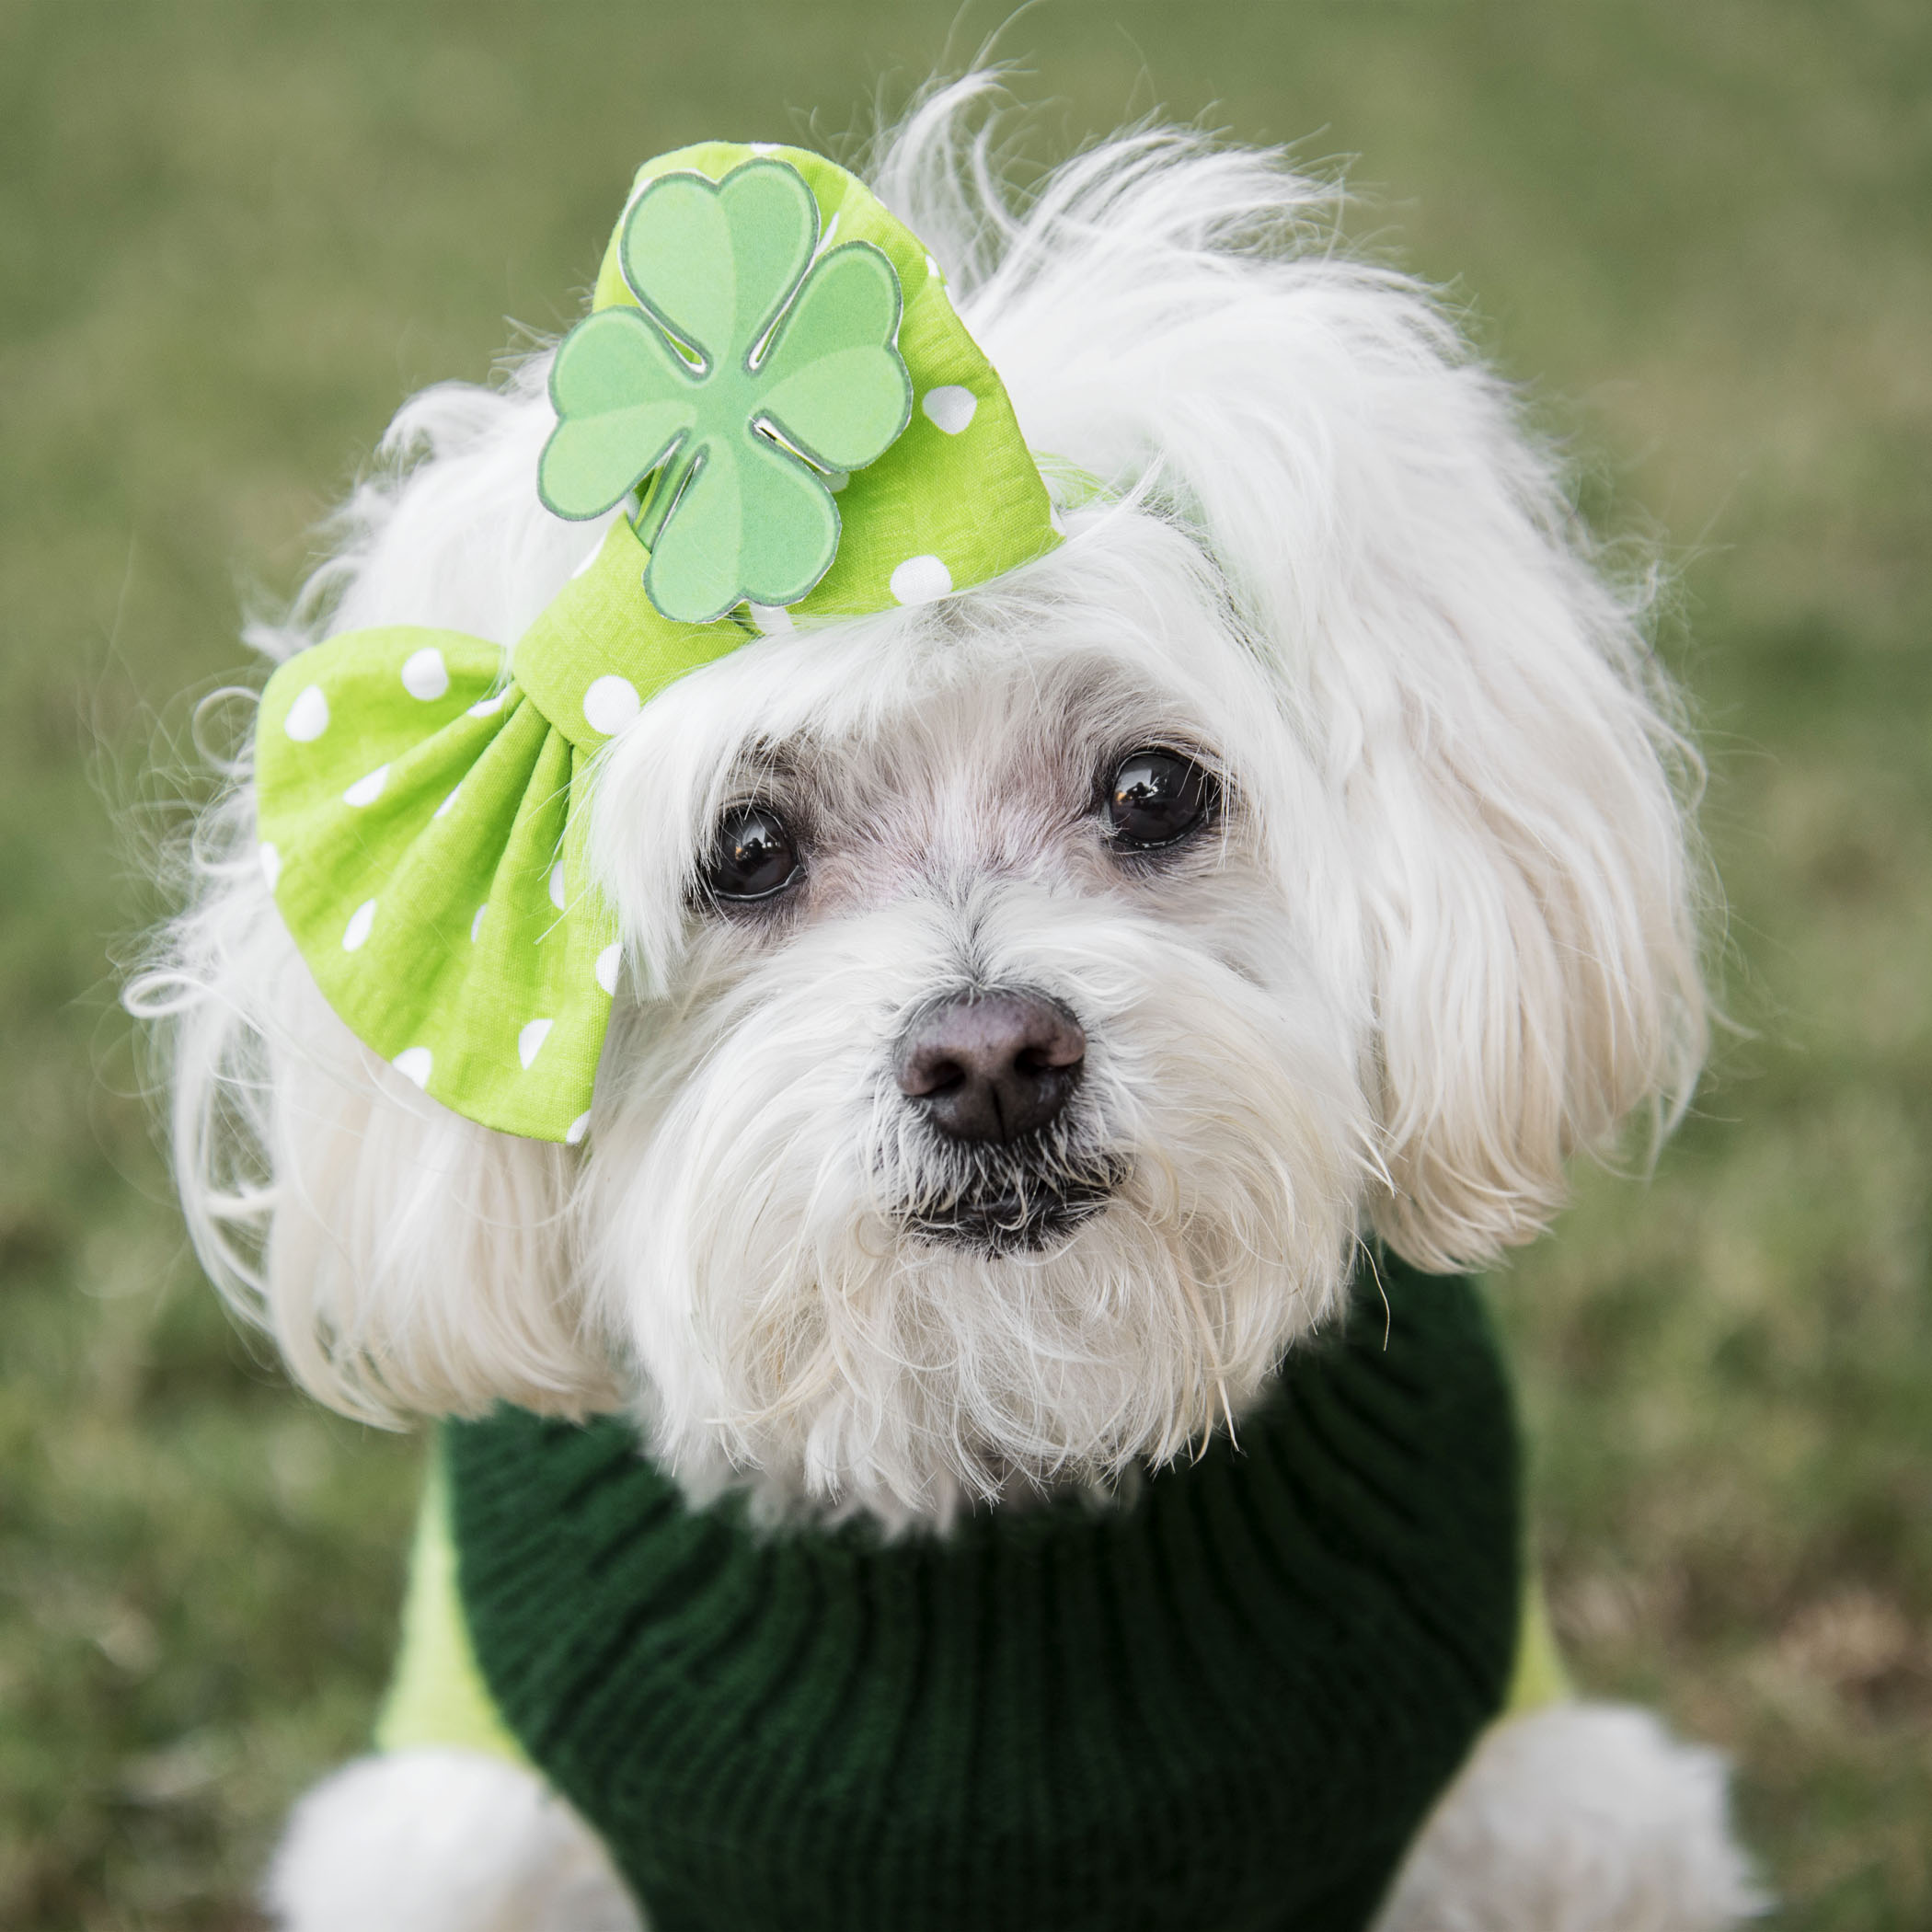 I told Mom there was no way I was wearing a top hat and bow tie, so she had to get creative with a little diva flare for our shared St Patty's day attire! Mom says I look uber fabulous and oh so sweet, so I guess her creativity worked!